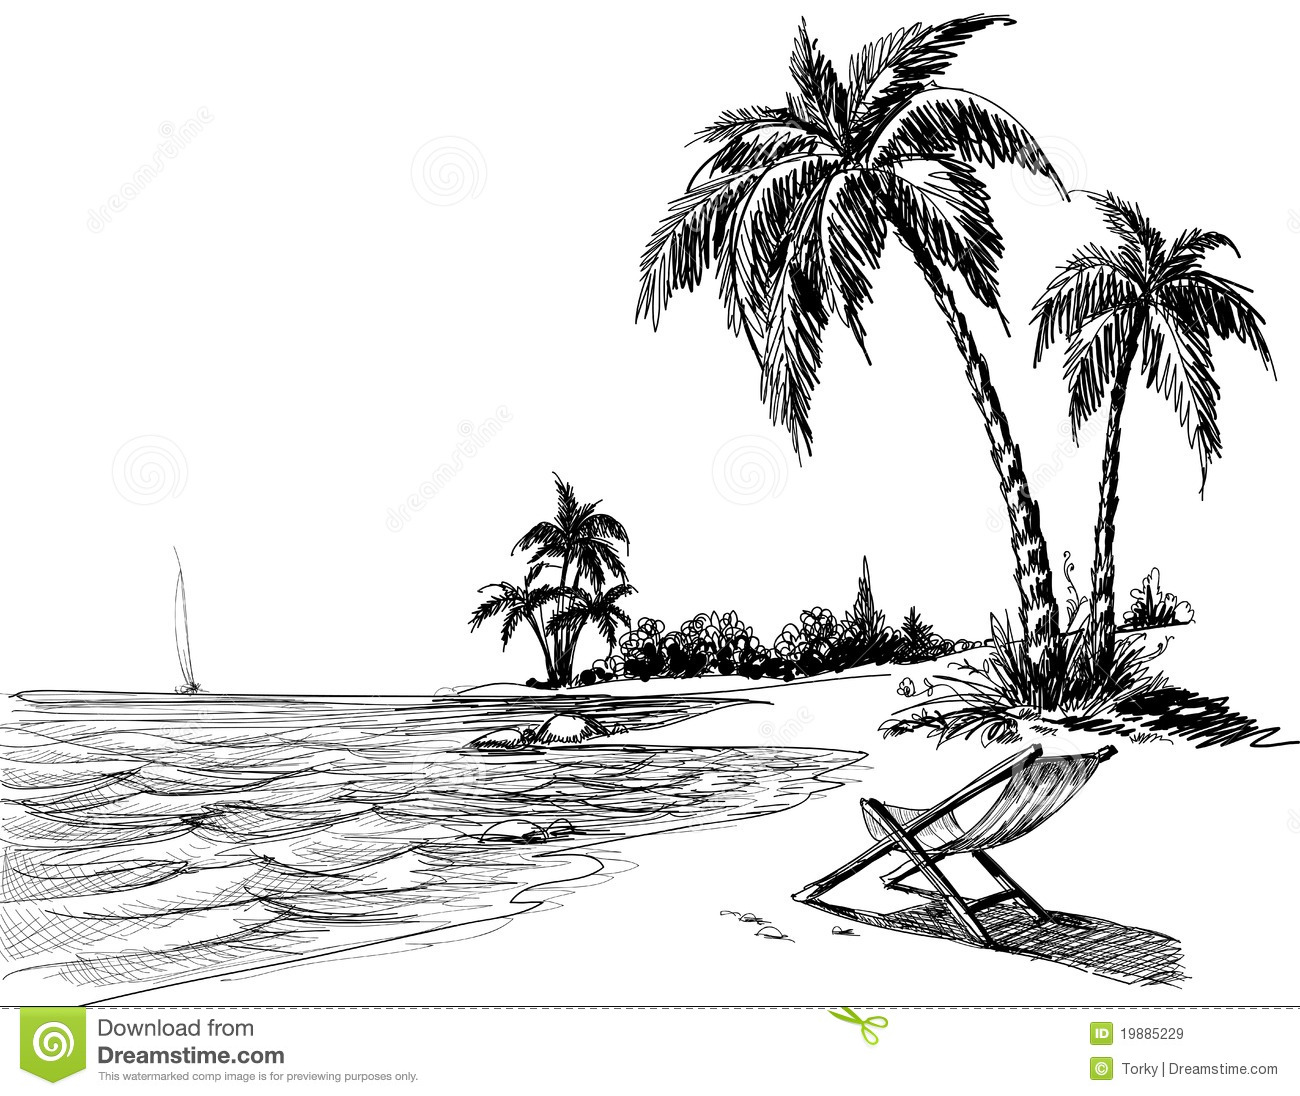 Drawn beach Pencil Palm Beach Tree Tree